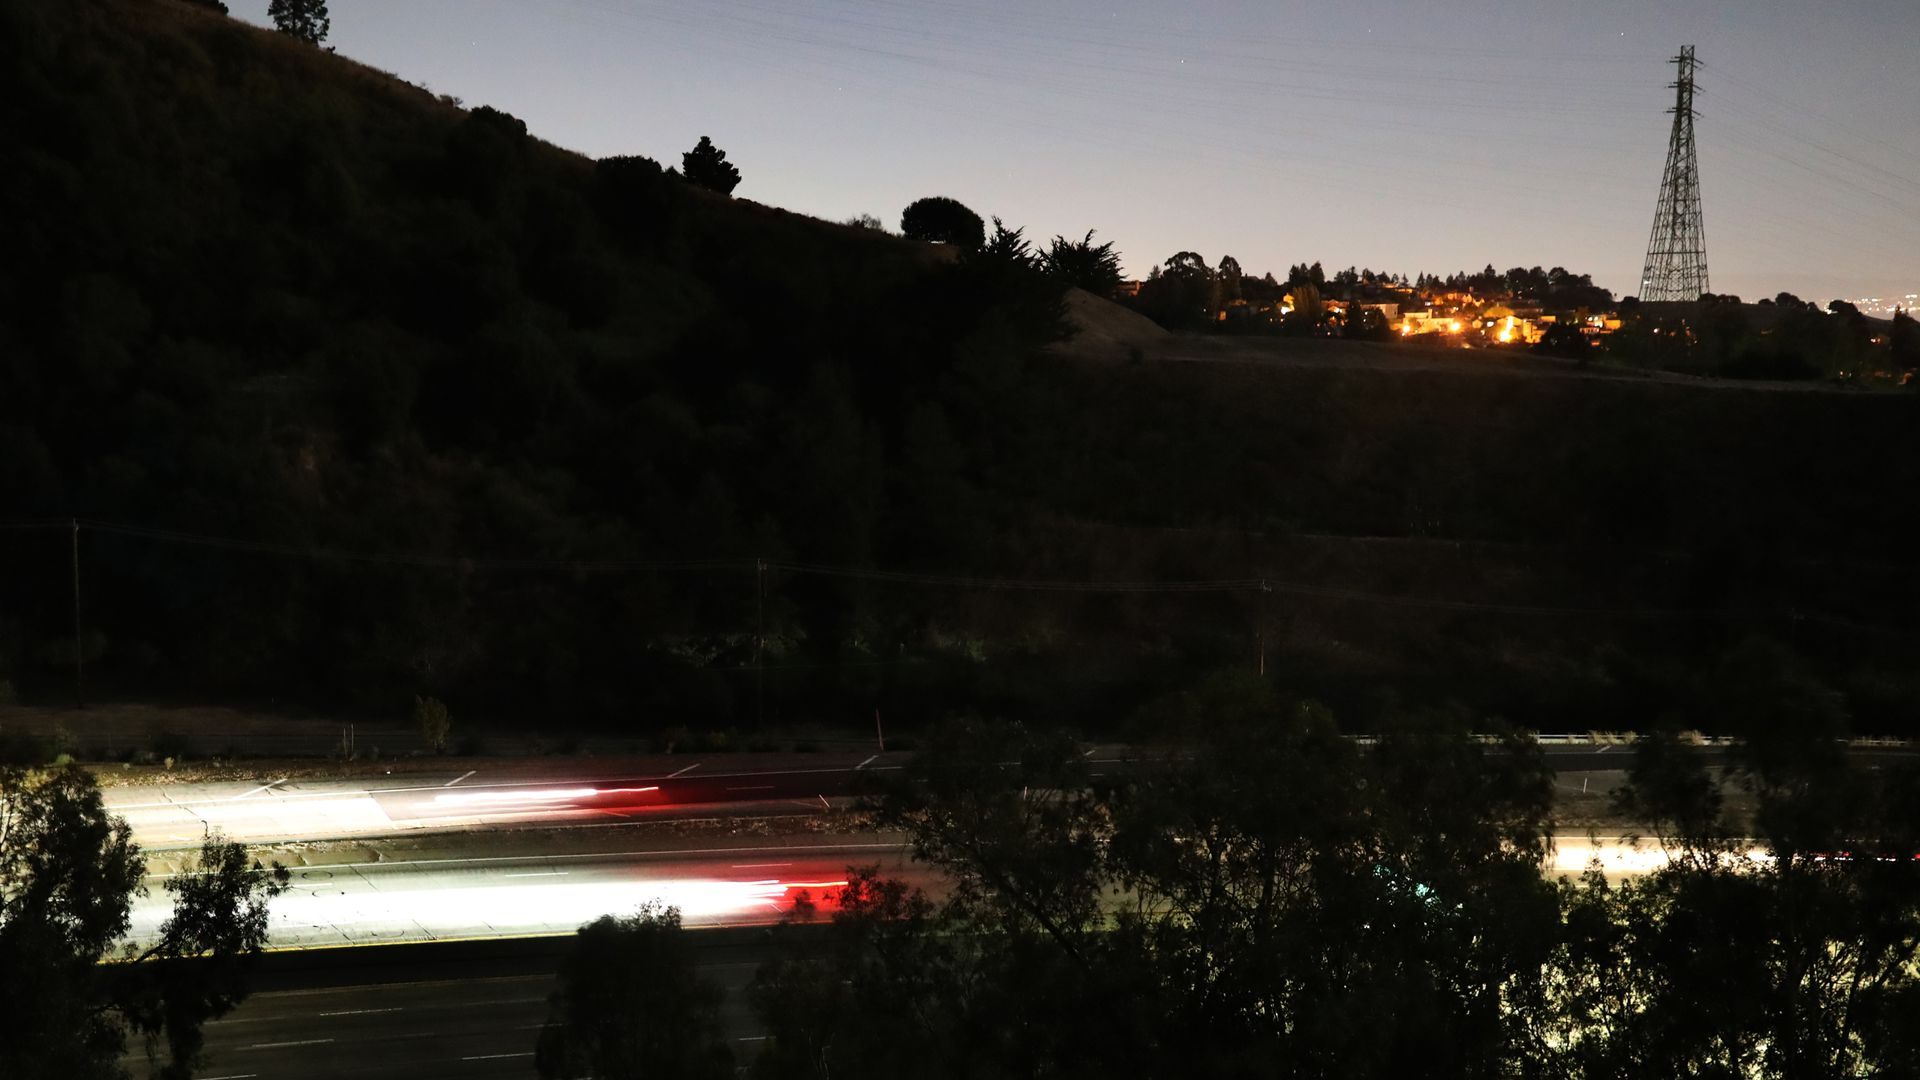 Streaks of lights from vehicles drive along highway 24 during the PG&E power outage in Oakland, Calif., on Thursday, Oct. 10